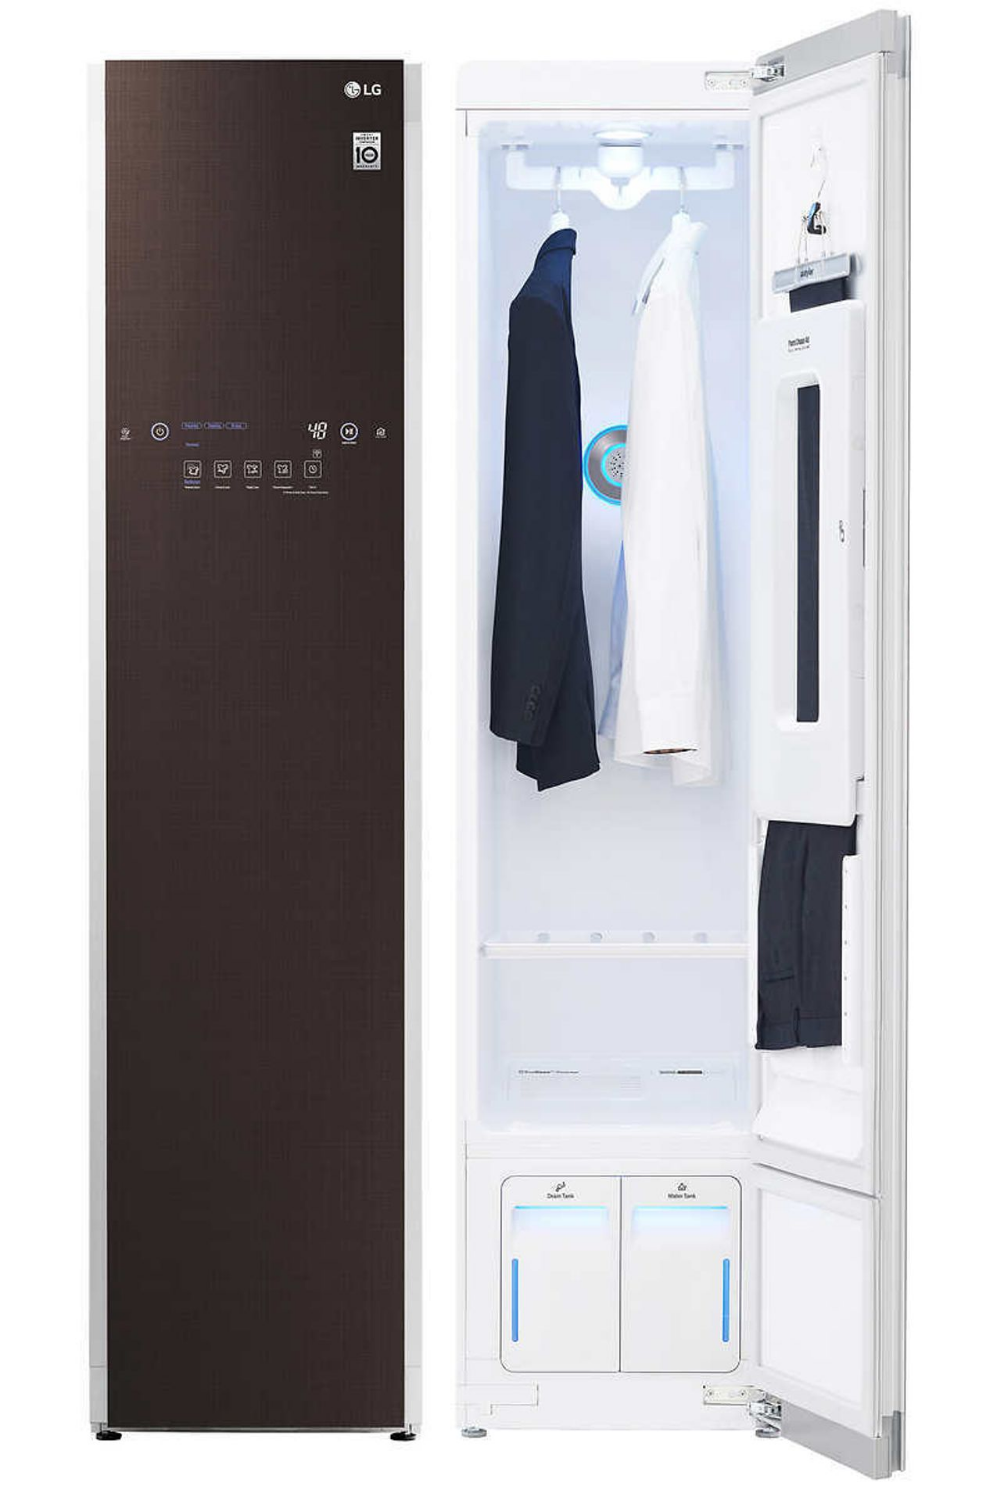 Putting Together A Souped Up Dressing Space Lg Styler Wi Fi Enabled Steam Clothing Care System Is A Compact Sl Smart Appliances Locker Storage Cool Lighting